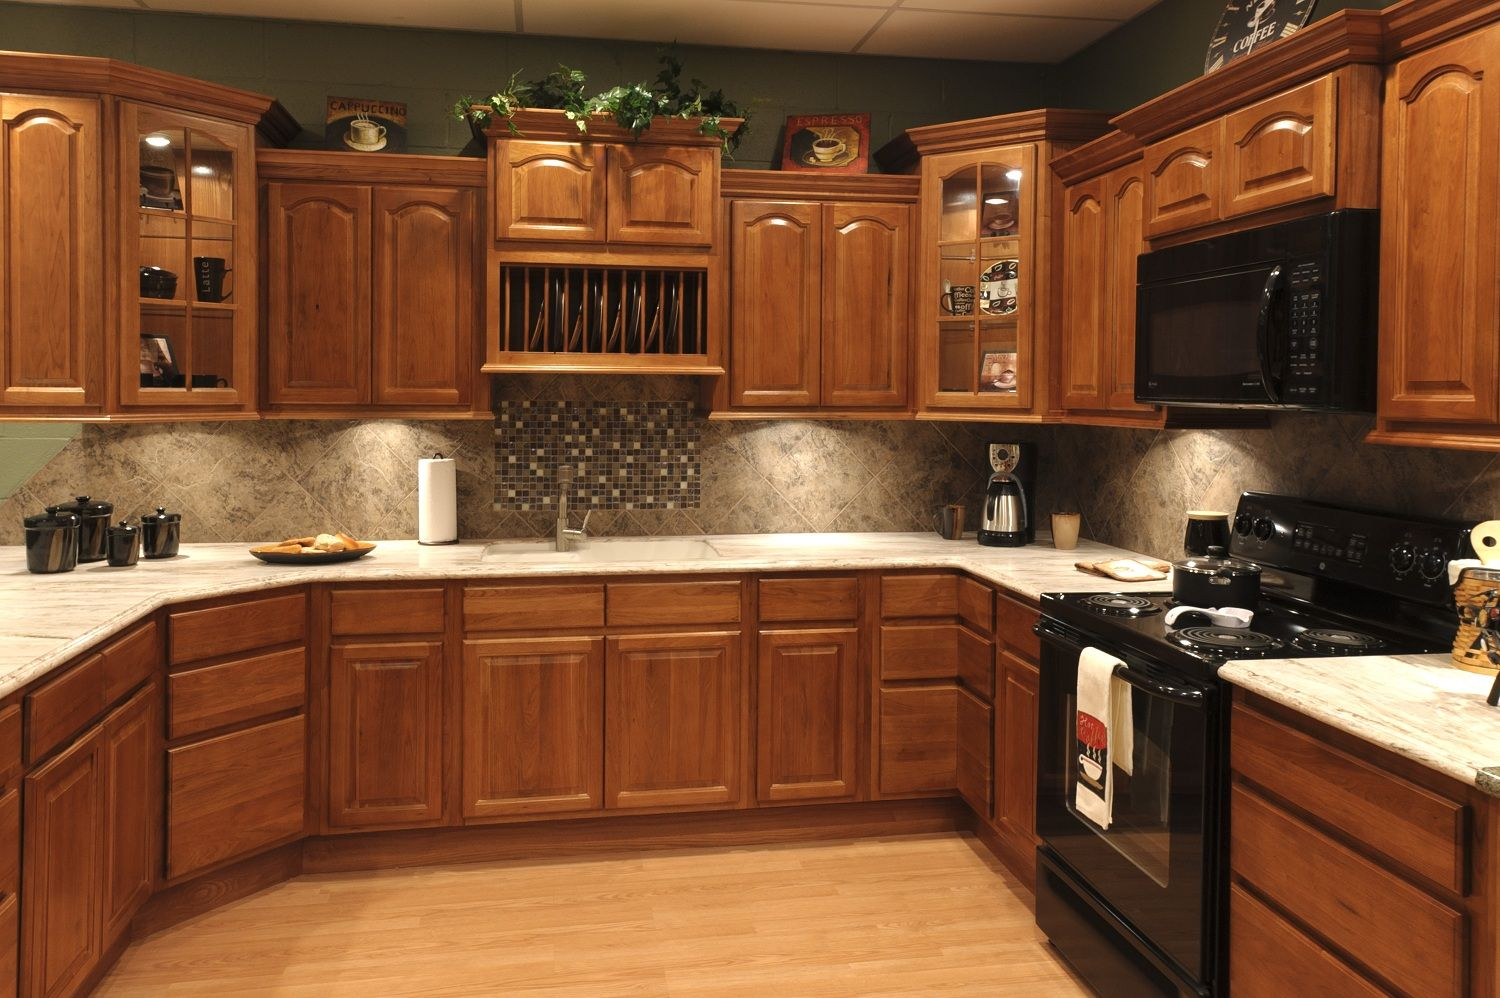 Cabinet For Kitchens Beautiful Kitchen Cabinets Windy Hill Hardwoods Beautiful Jmark